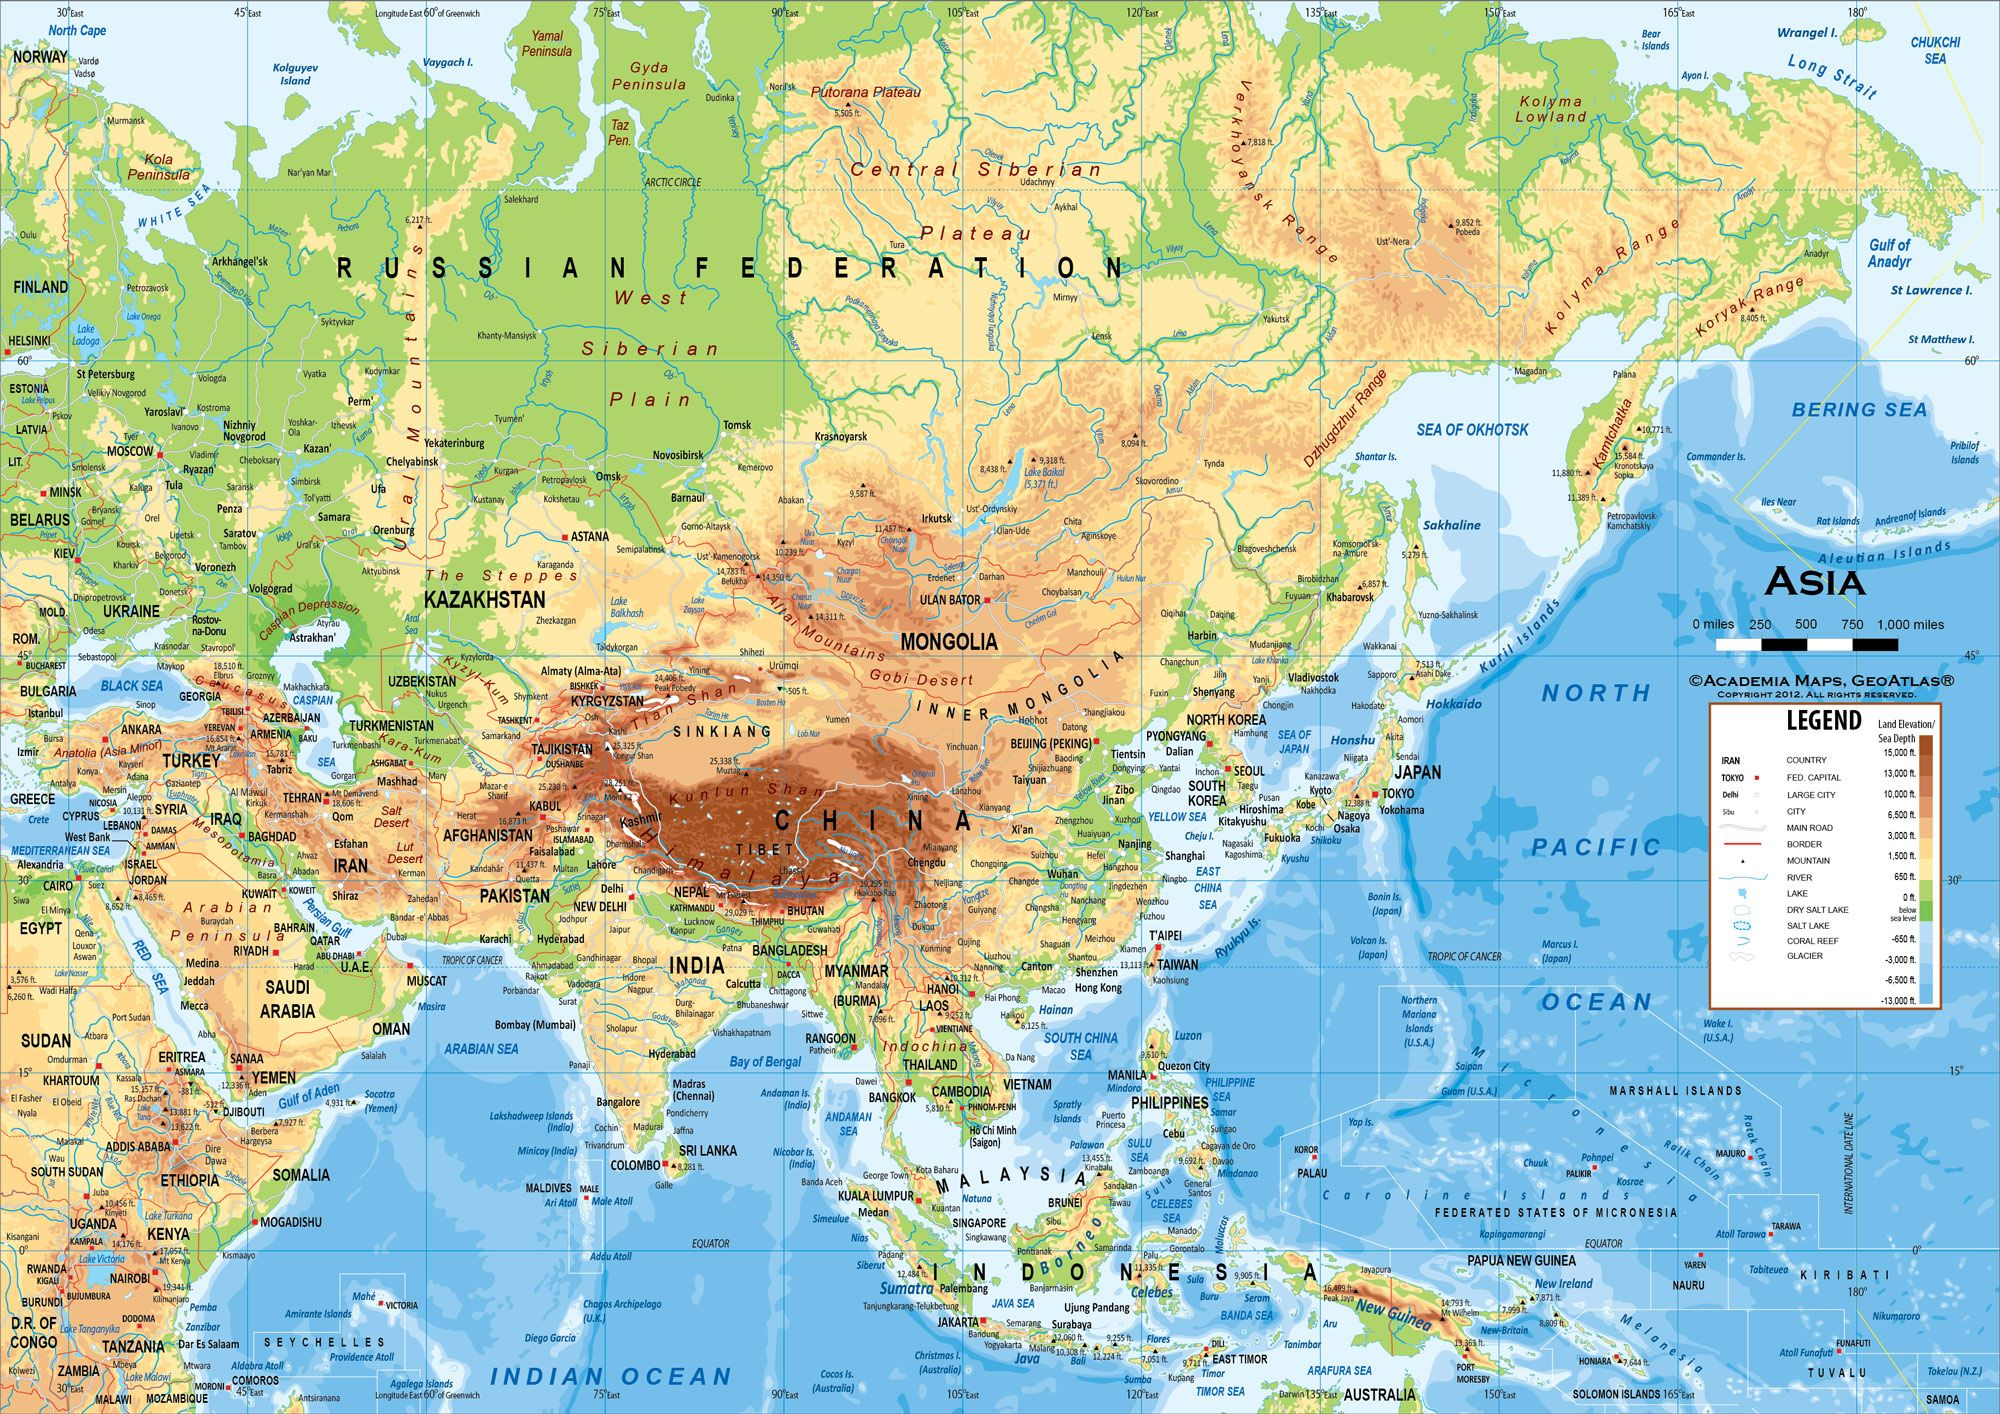 Map Of Asia Hd Image.Asia Map Wallpapers Top Free Asia Map Backgrounds Wallpaperaccess